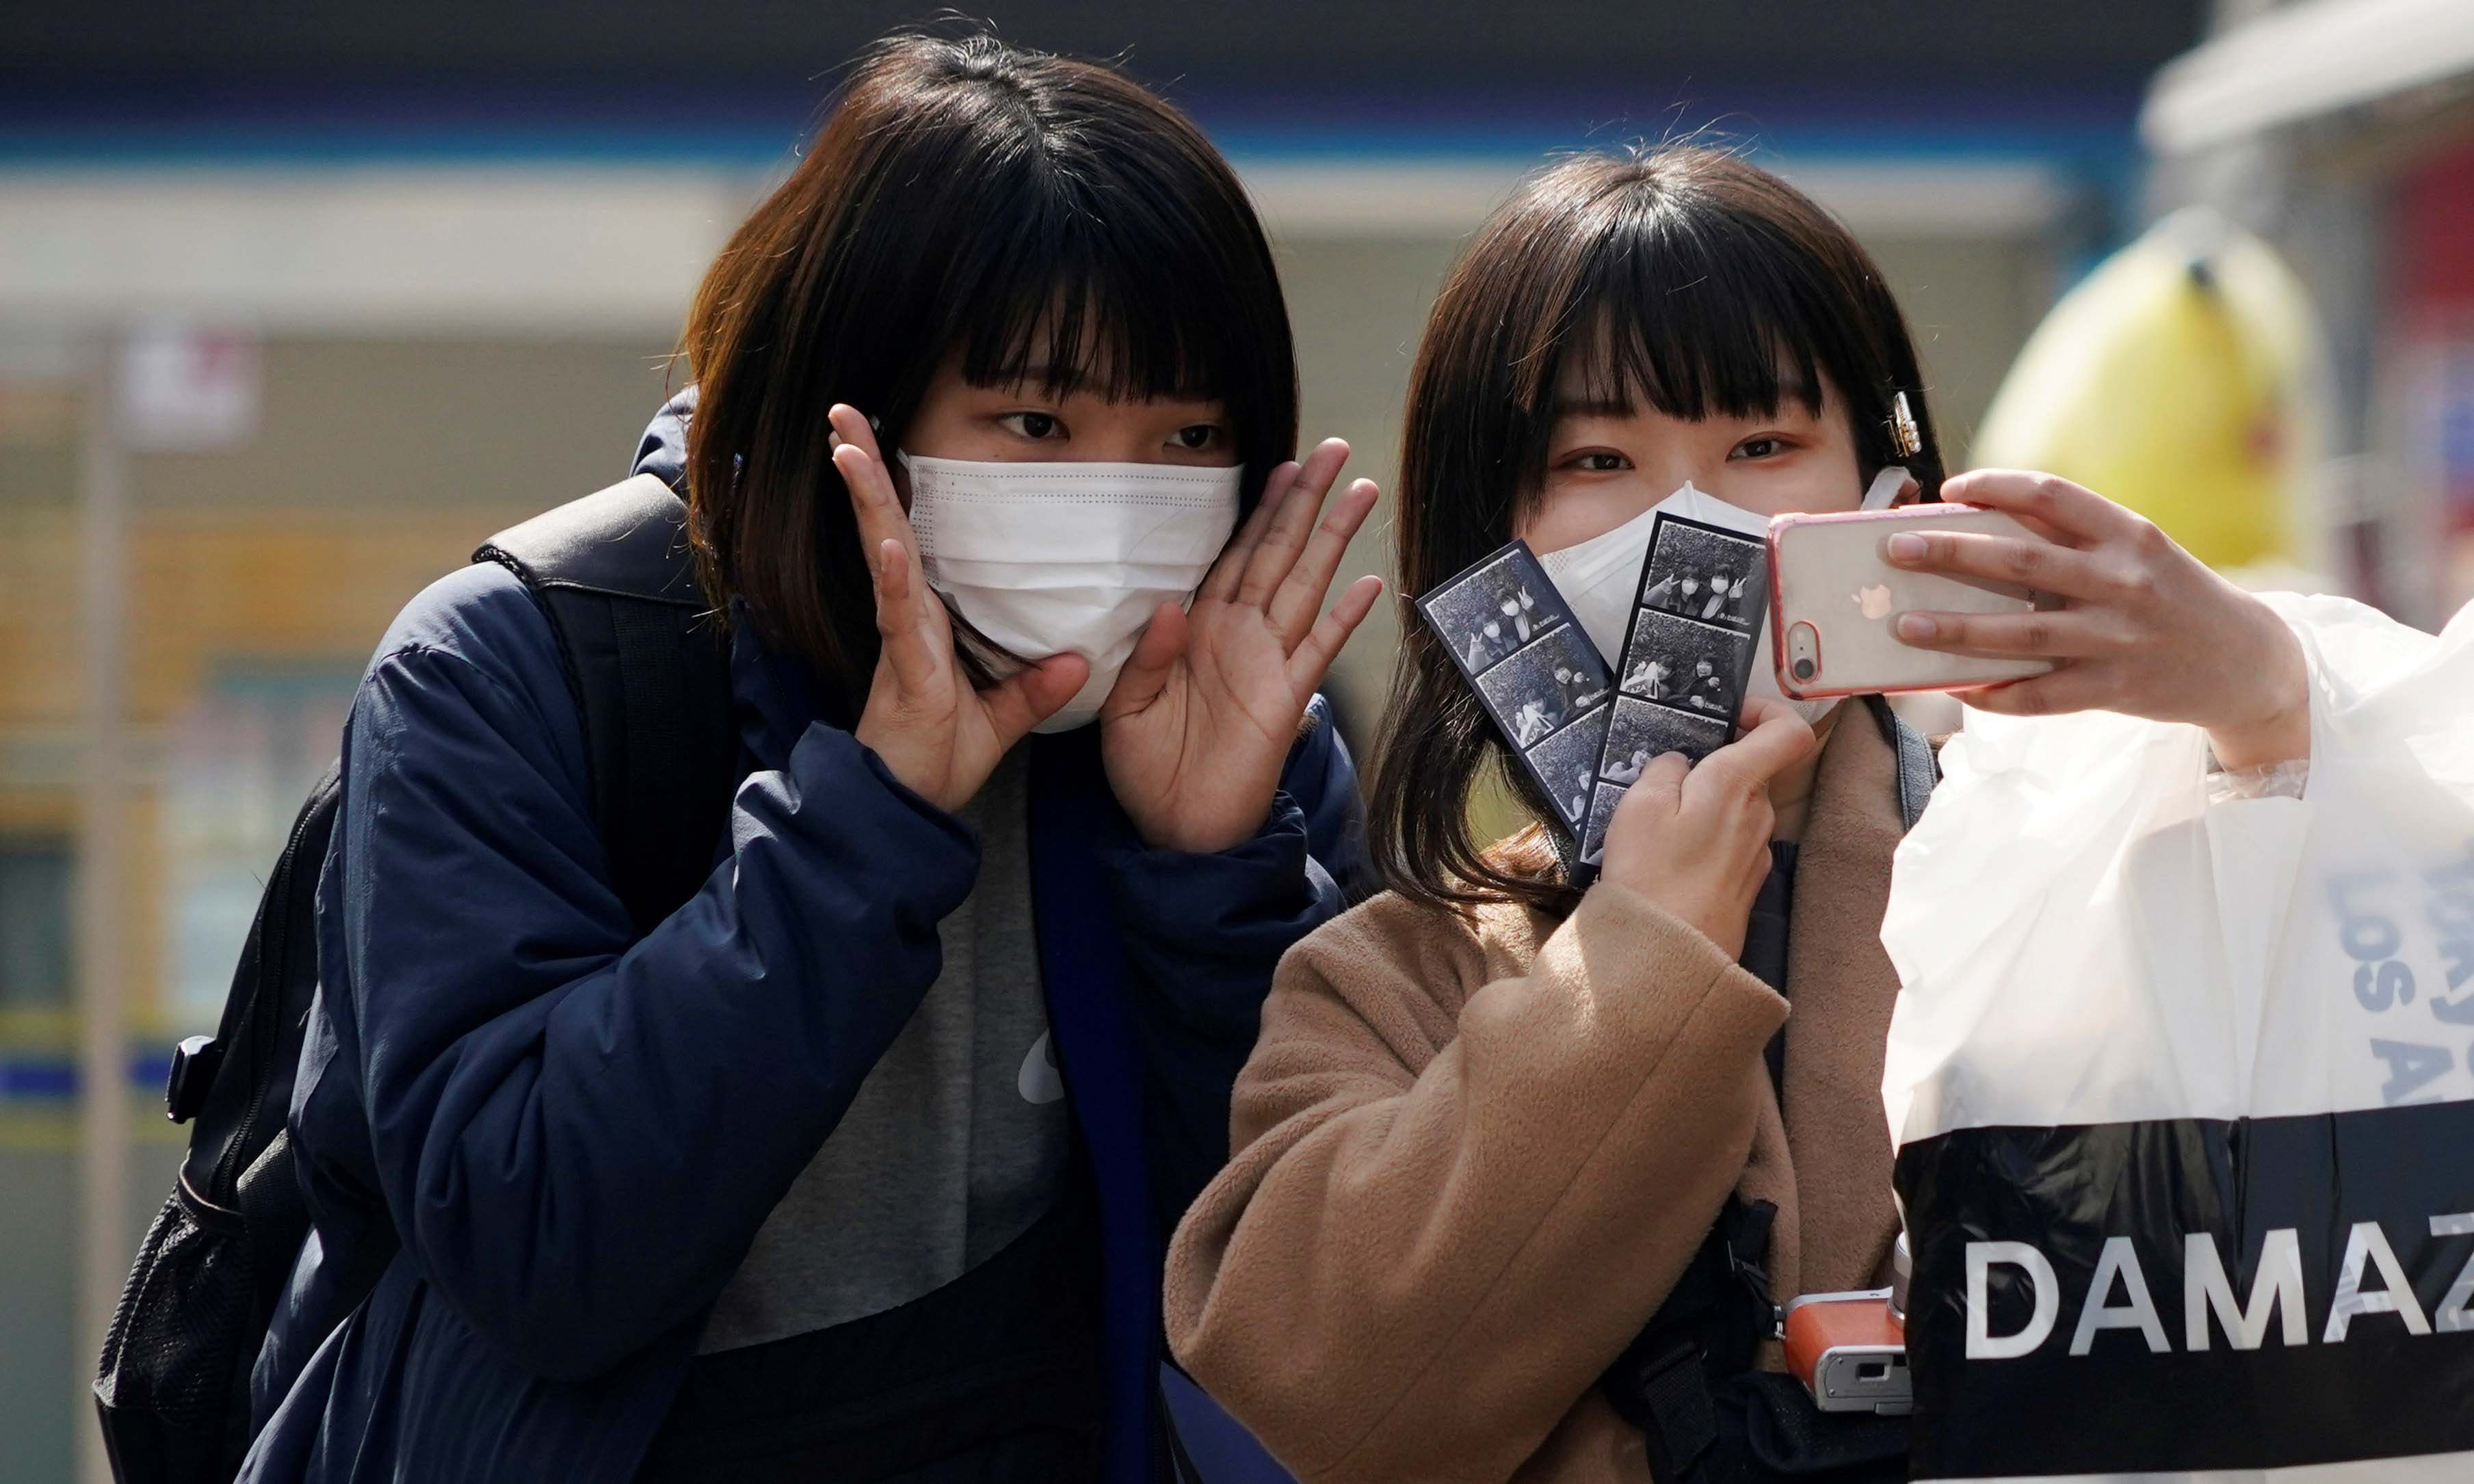 Tourists wearing masks to prevent the coronavirus take a selfie at a shopping district in Seoul, South Korea, February 24, 2020. – Reuters/File